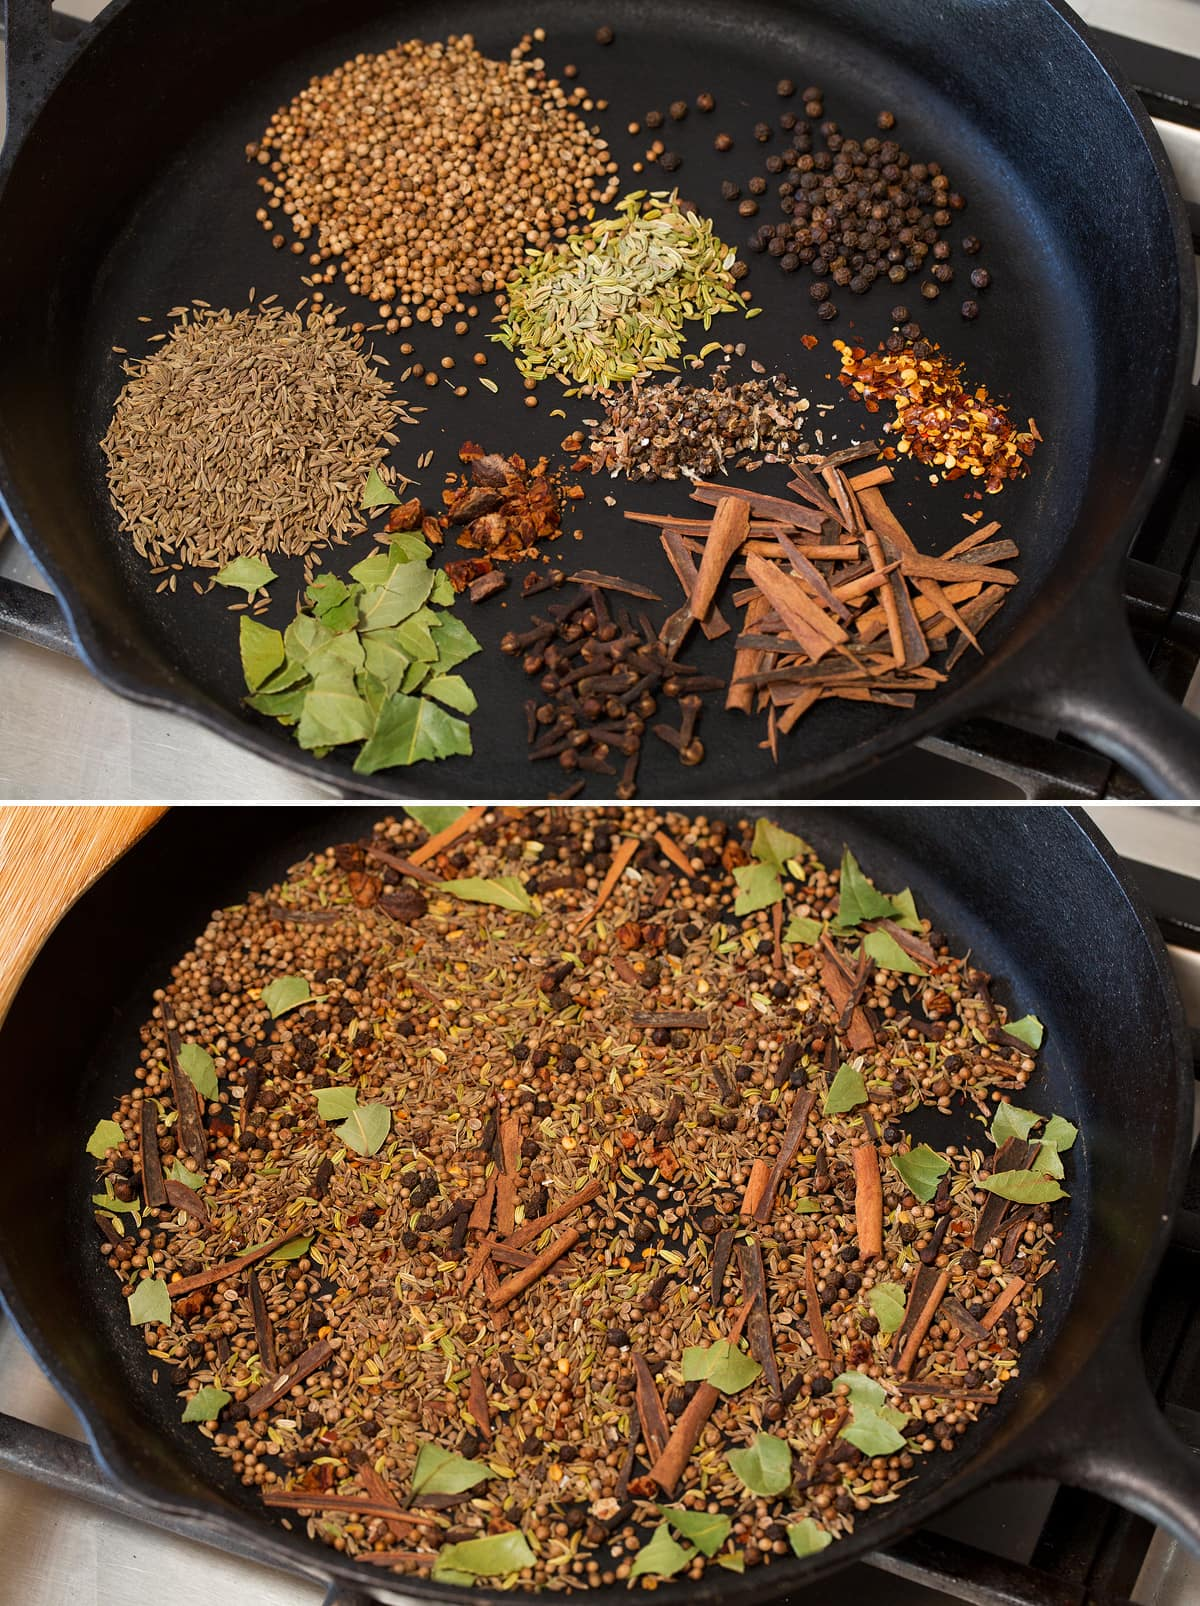 Collage of two images showing spices in a skillet before and after toasting.